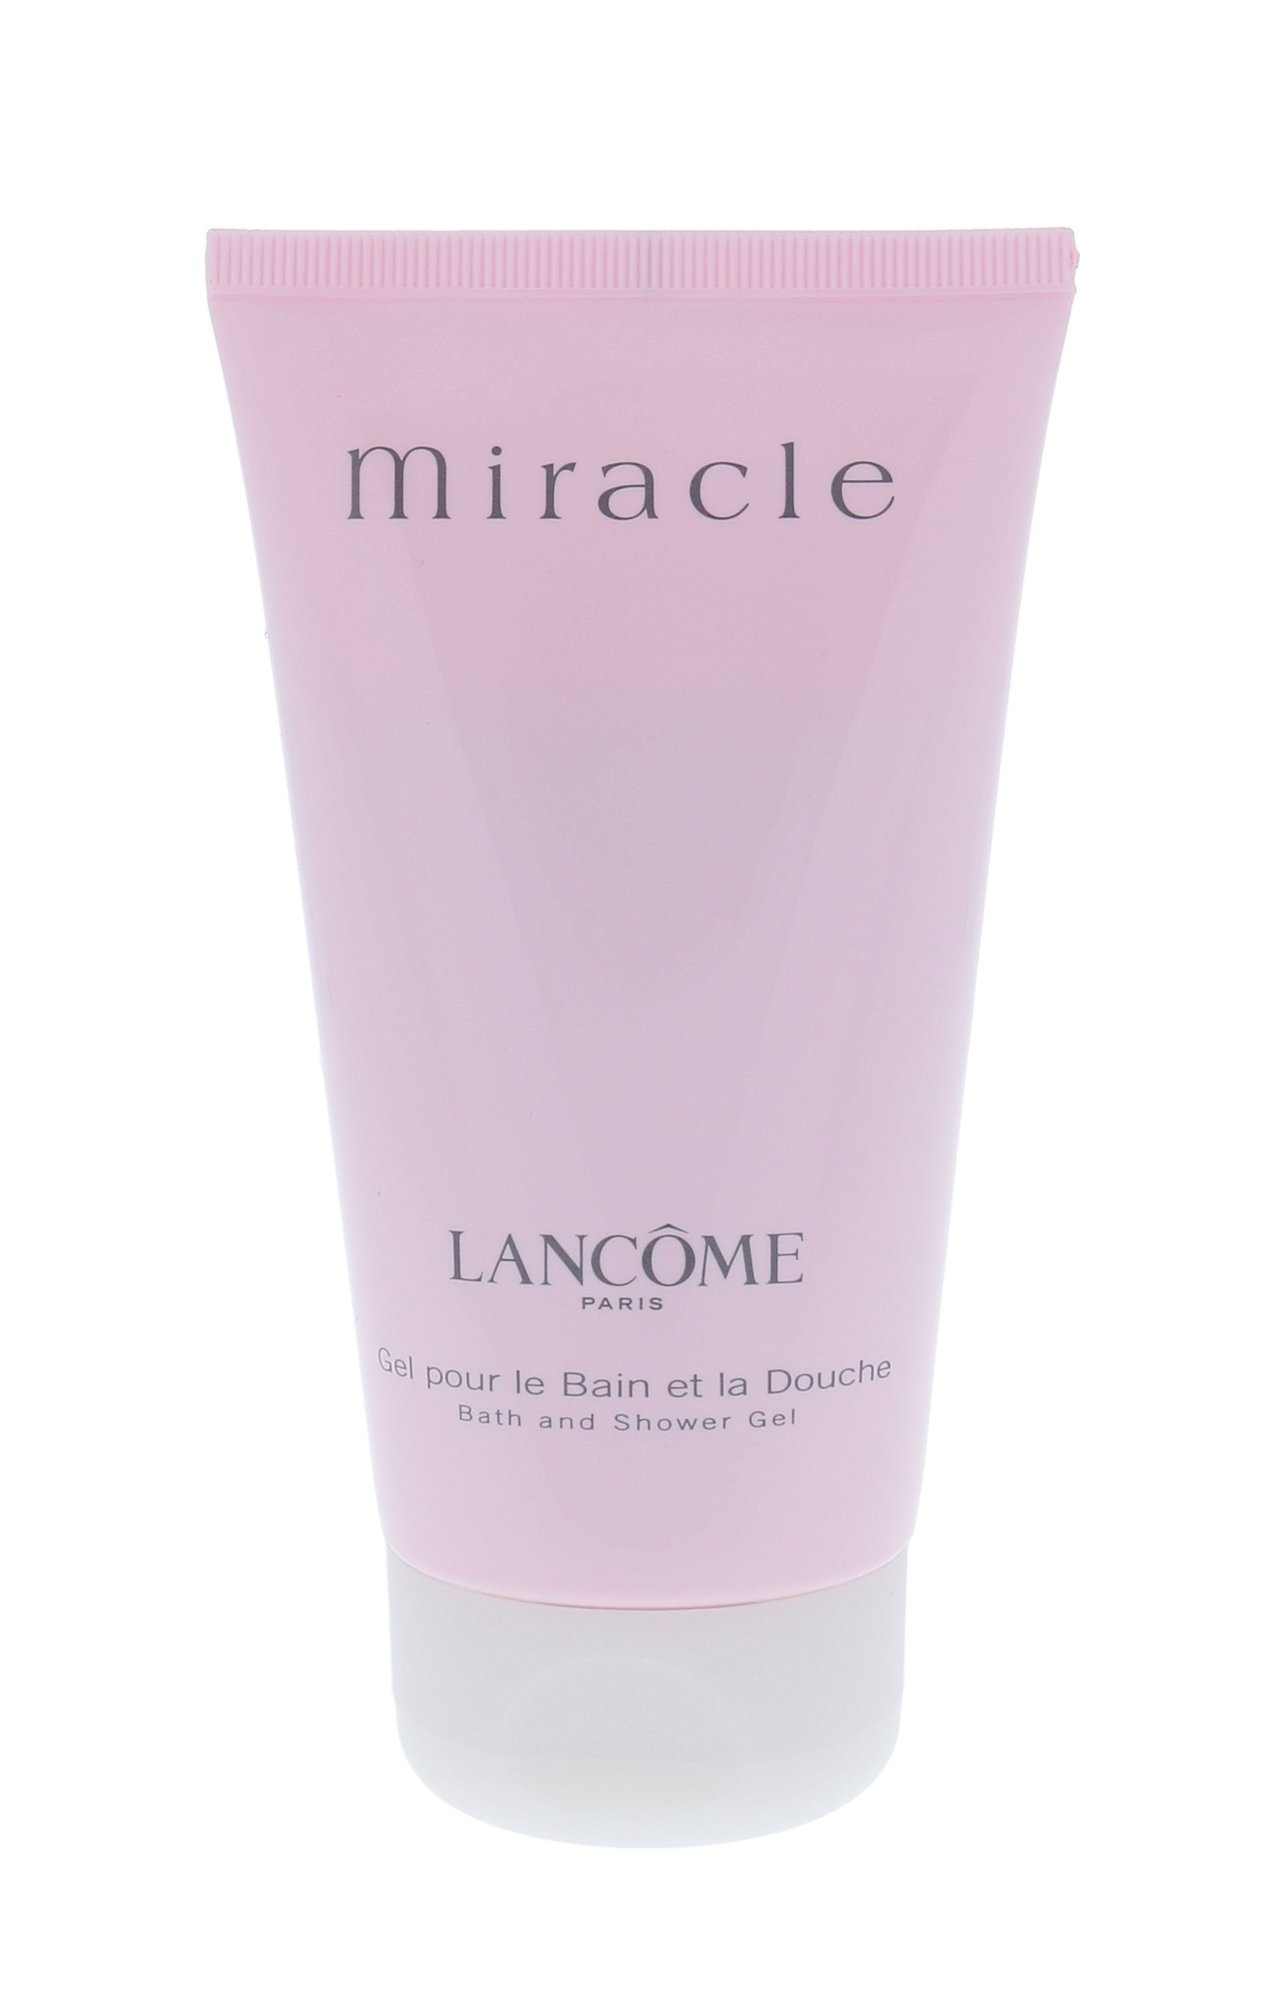 Lancôme Miracle Shower gel 150ml